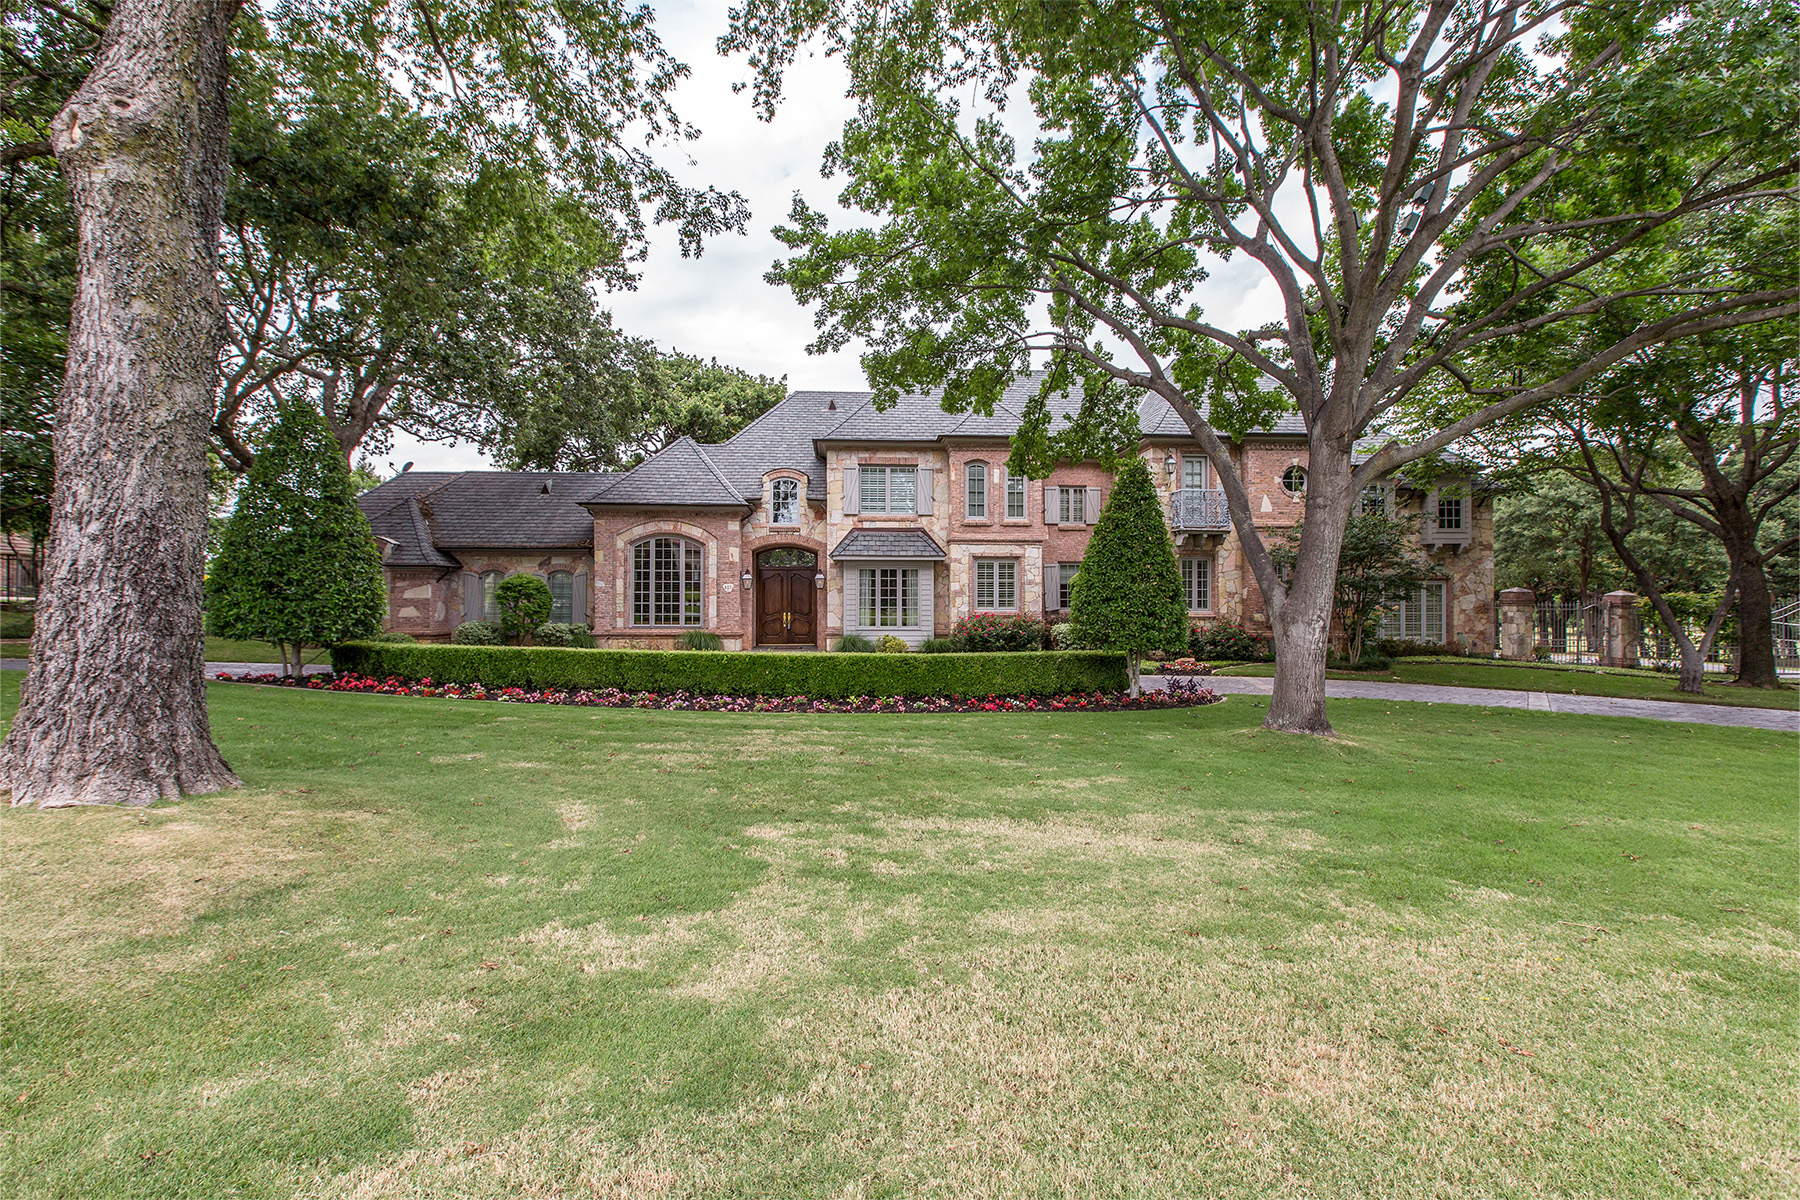 Single Family Home for Sale at Luxury & Land in Cottonwood Estates 117 Cottonwood Dr Coppell, Texas 75019 United States